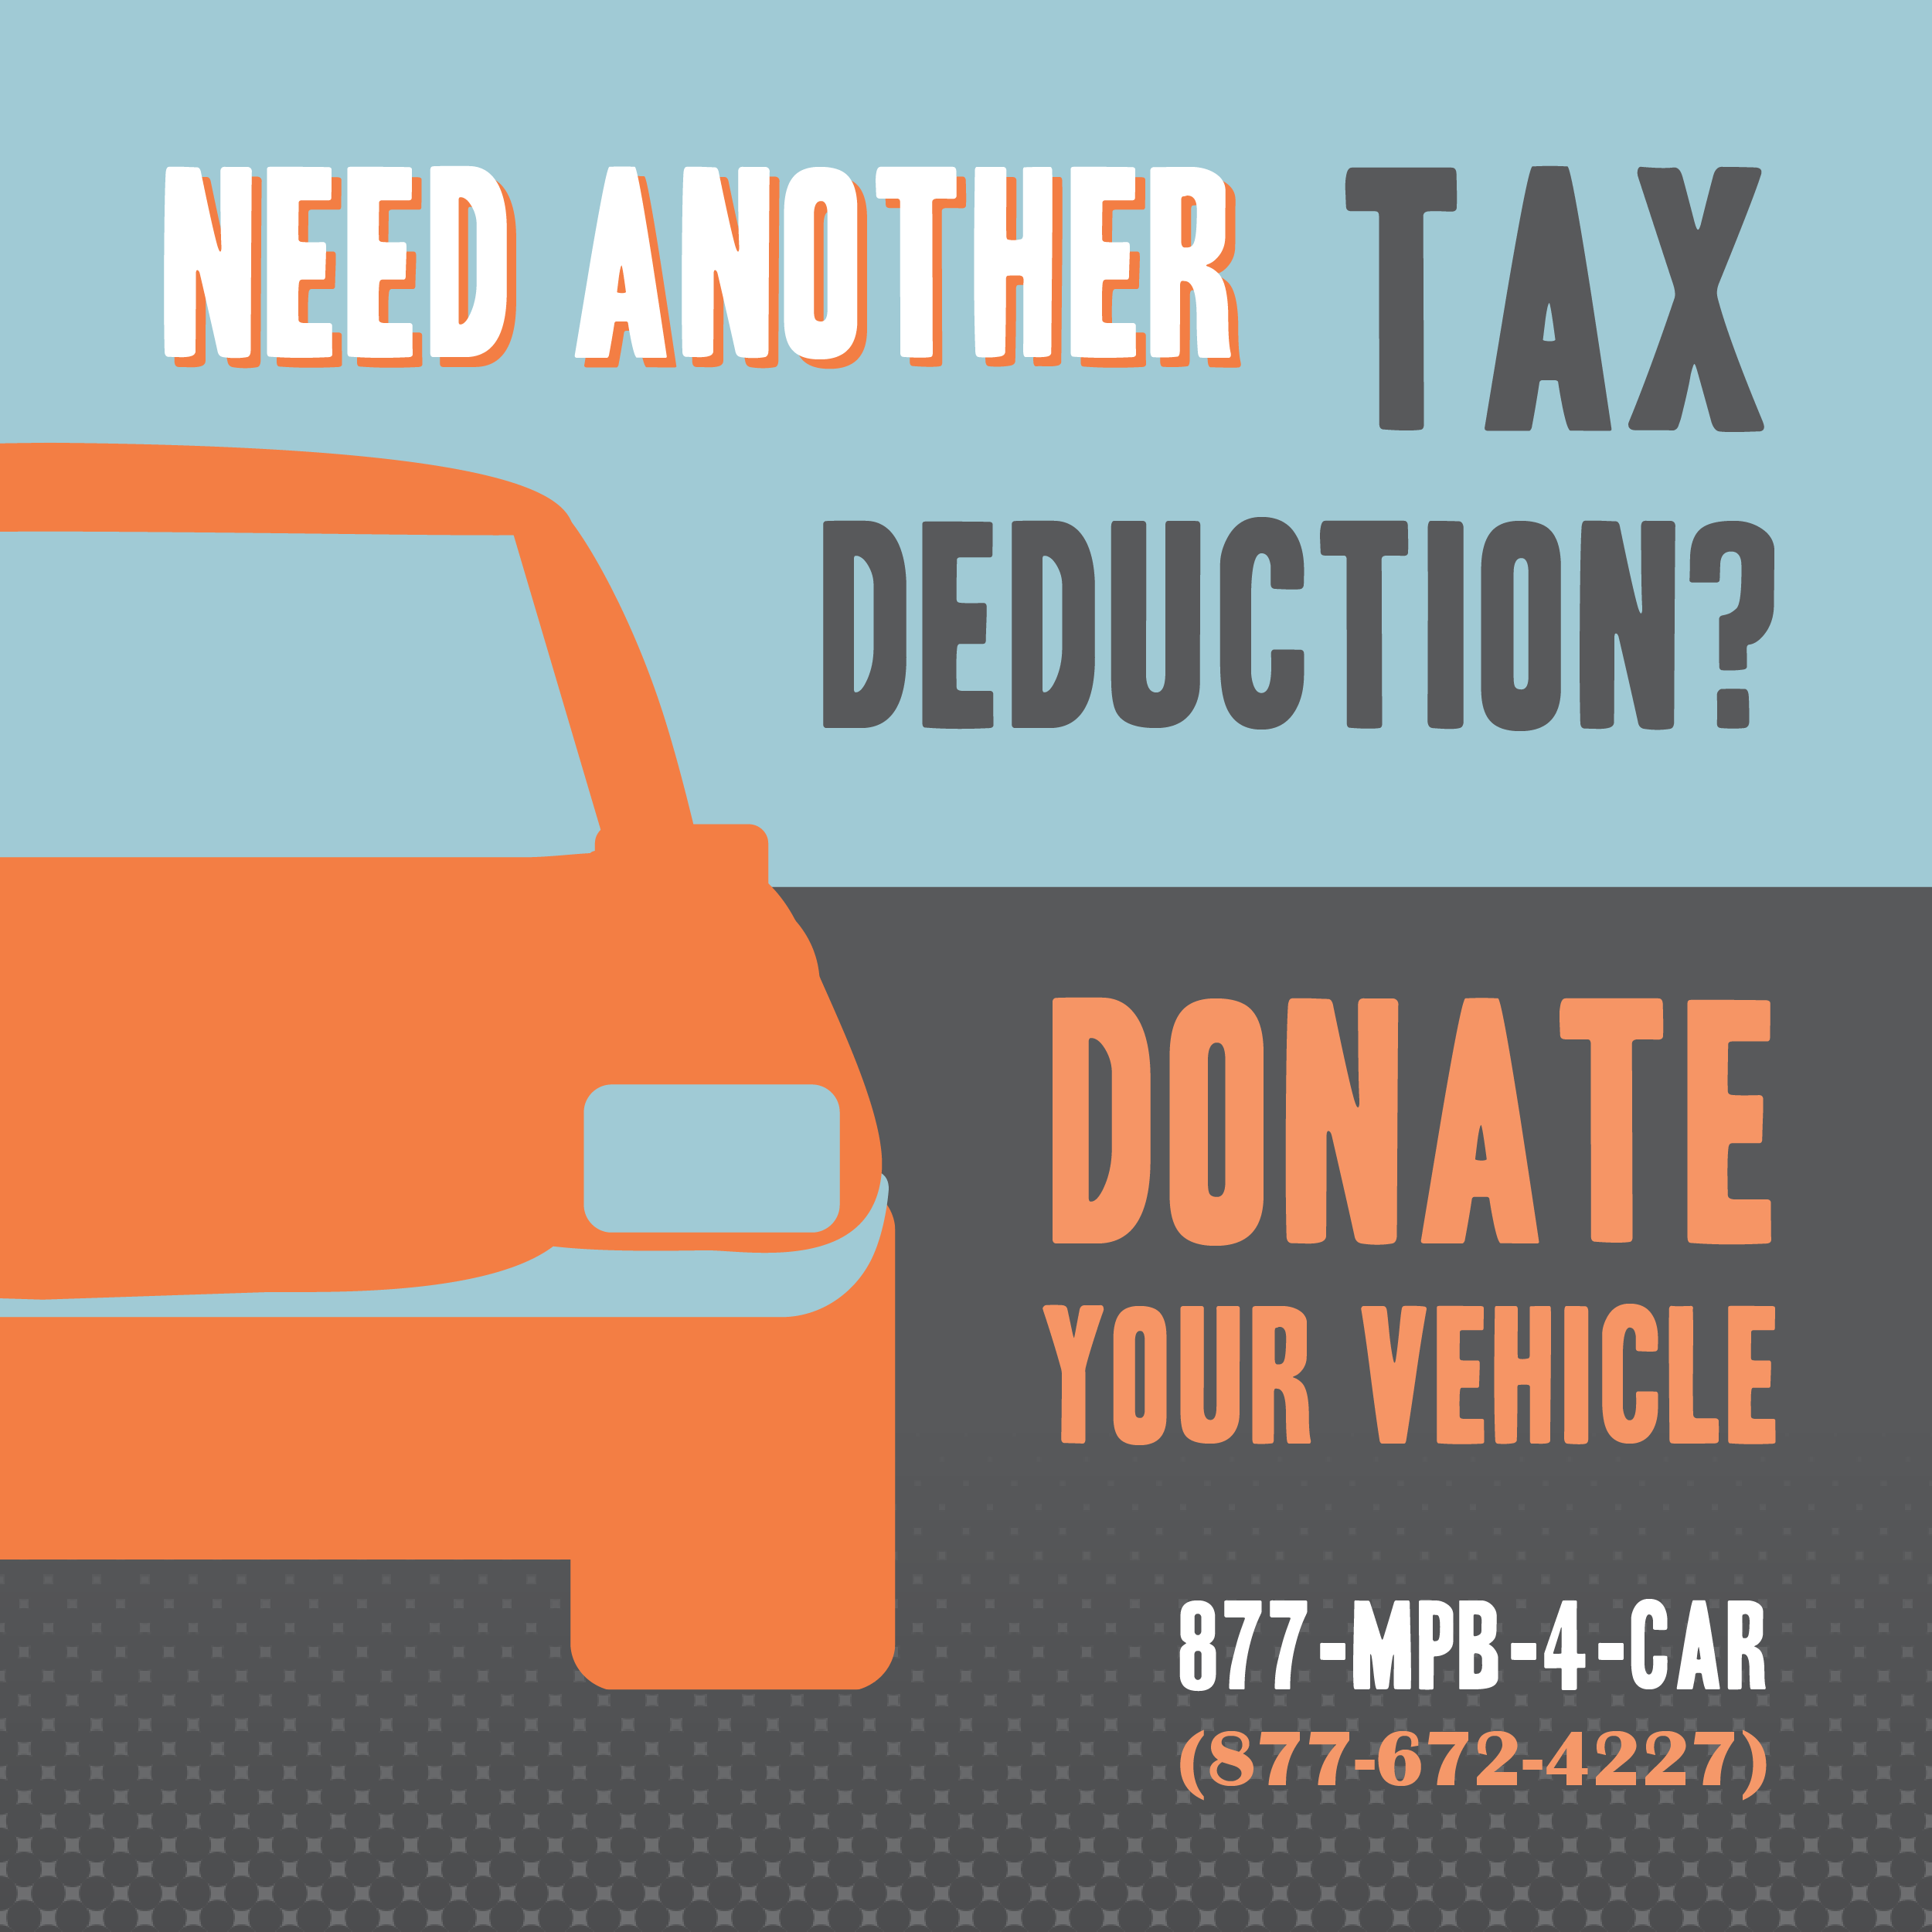 Donate your vehicle to MPB.